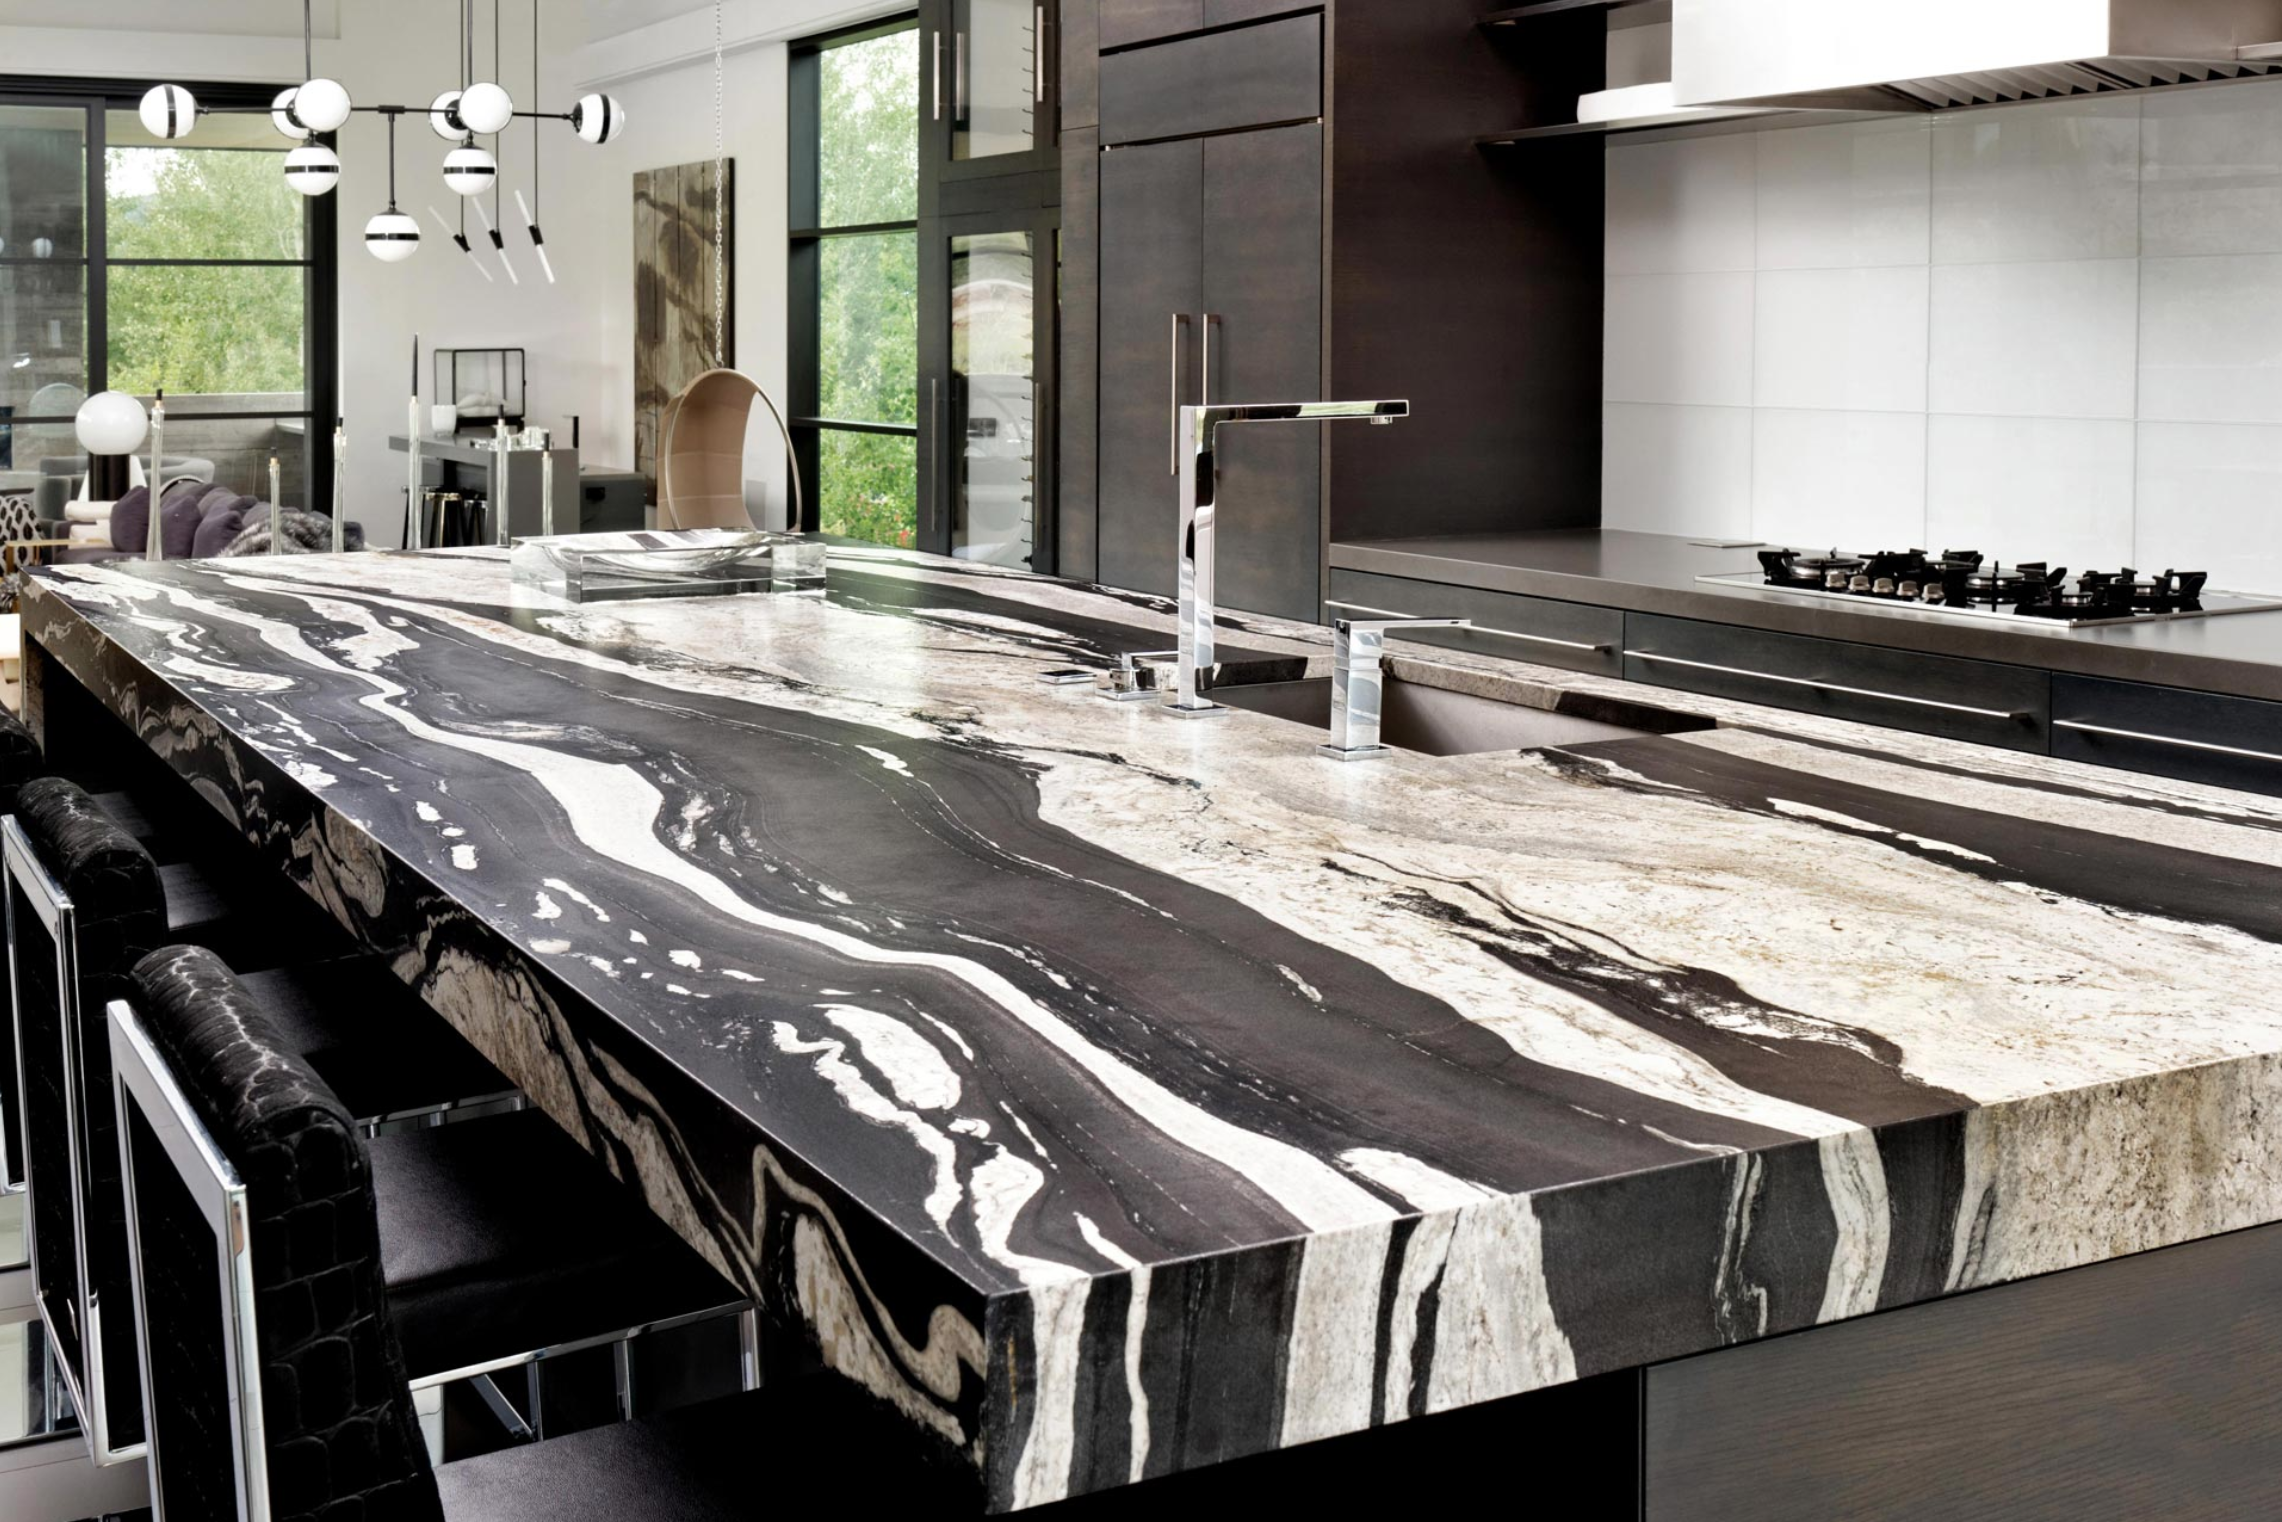 COPACABANA LEATHERED GRANITE KITCHEN